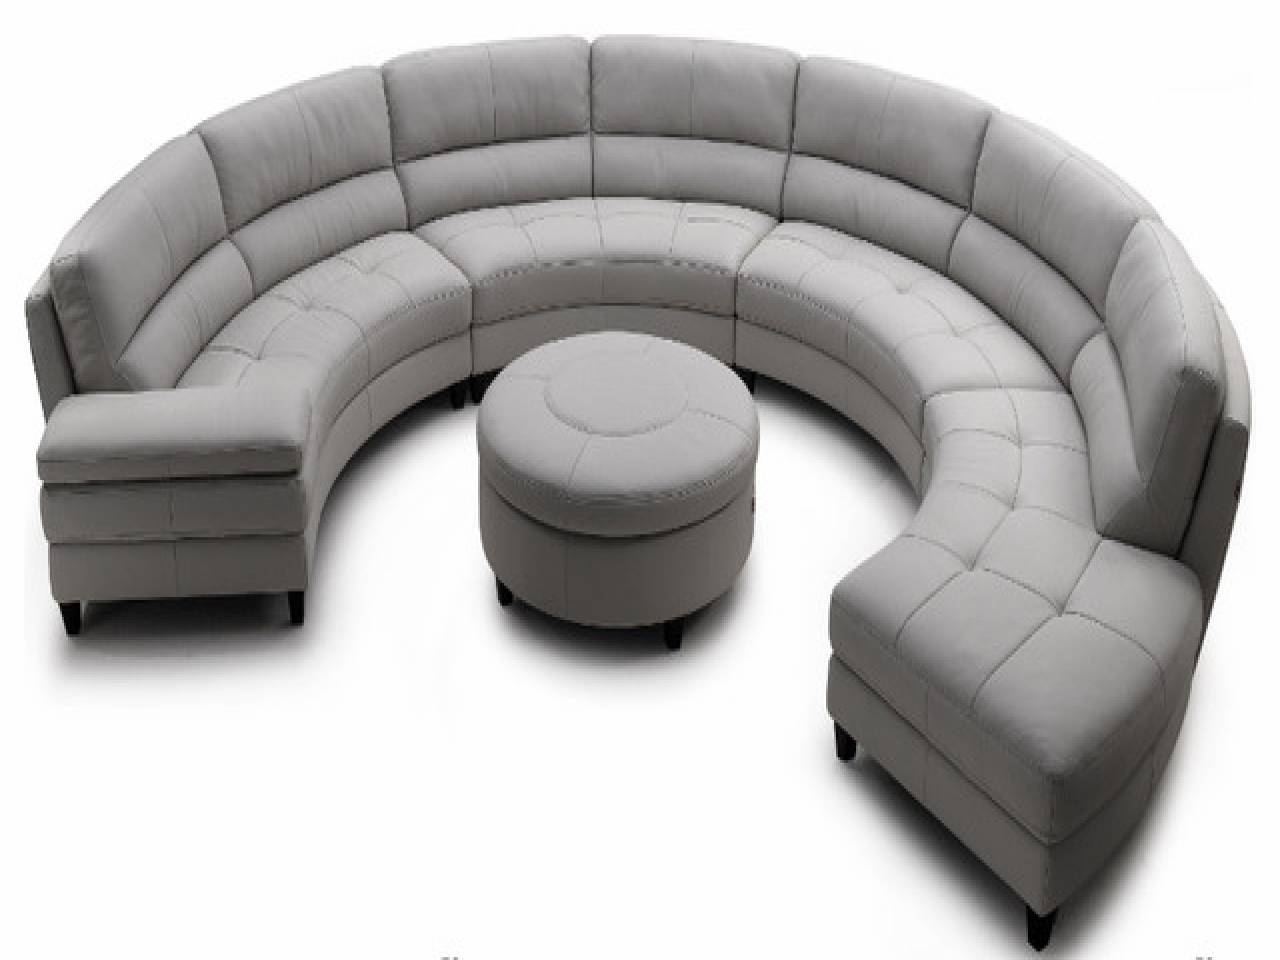 Sofas Center : Round Loungea With Baijou Sectional Modern within Circle Sectional Sofa (Image 27 of 30)